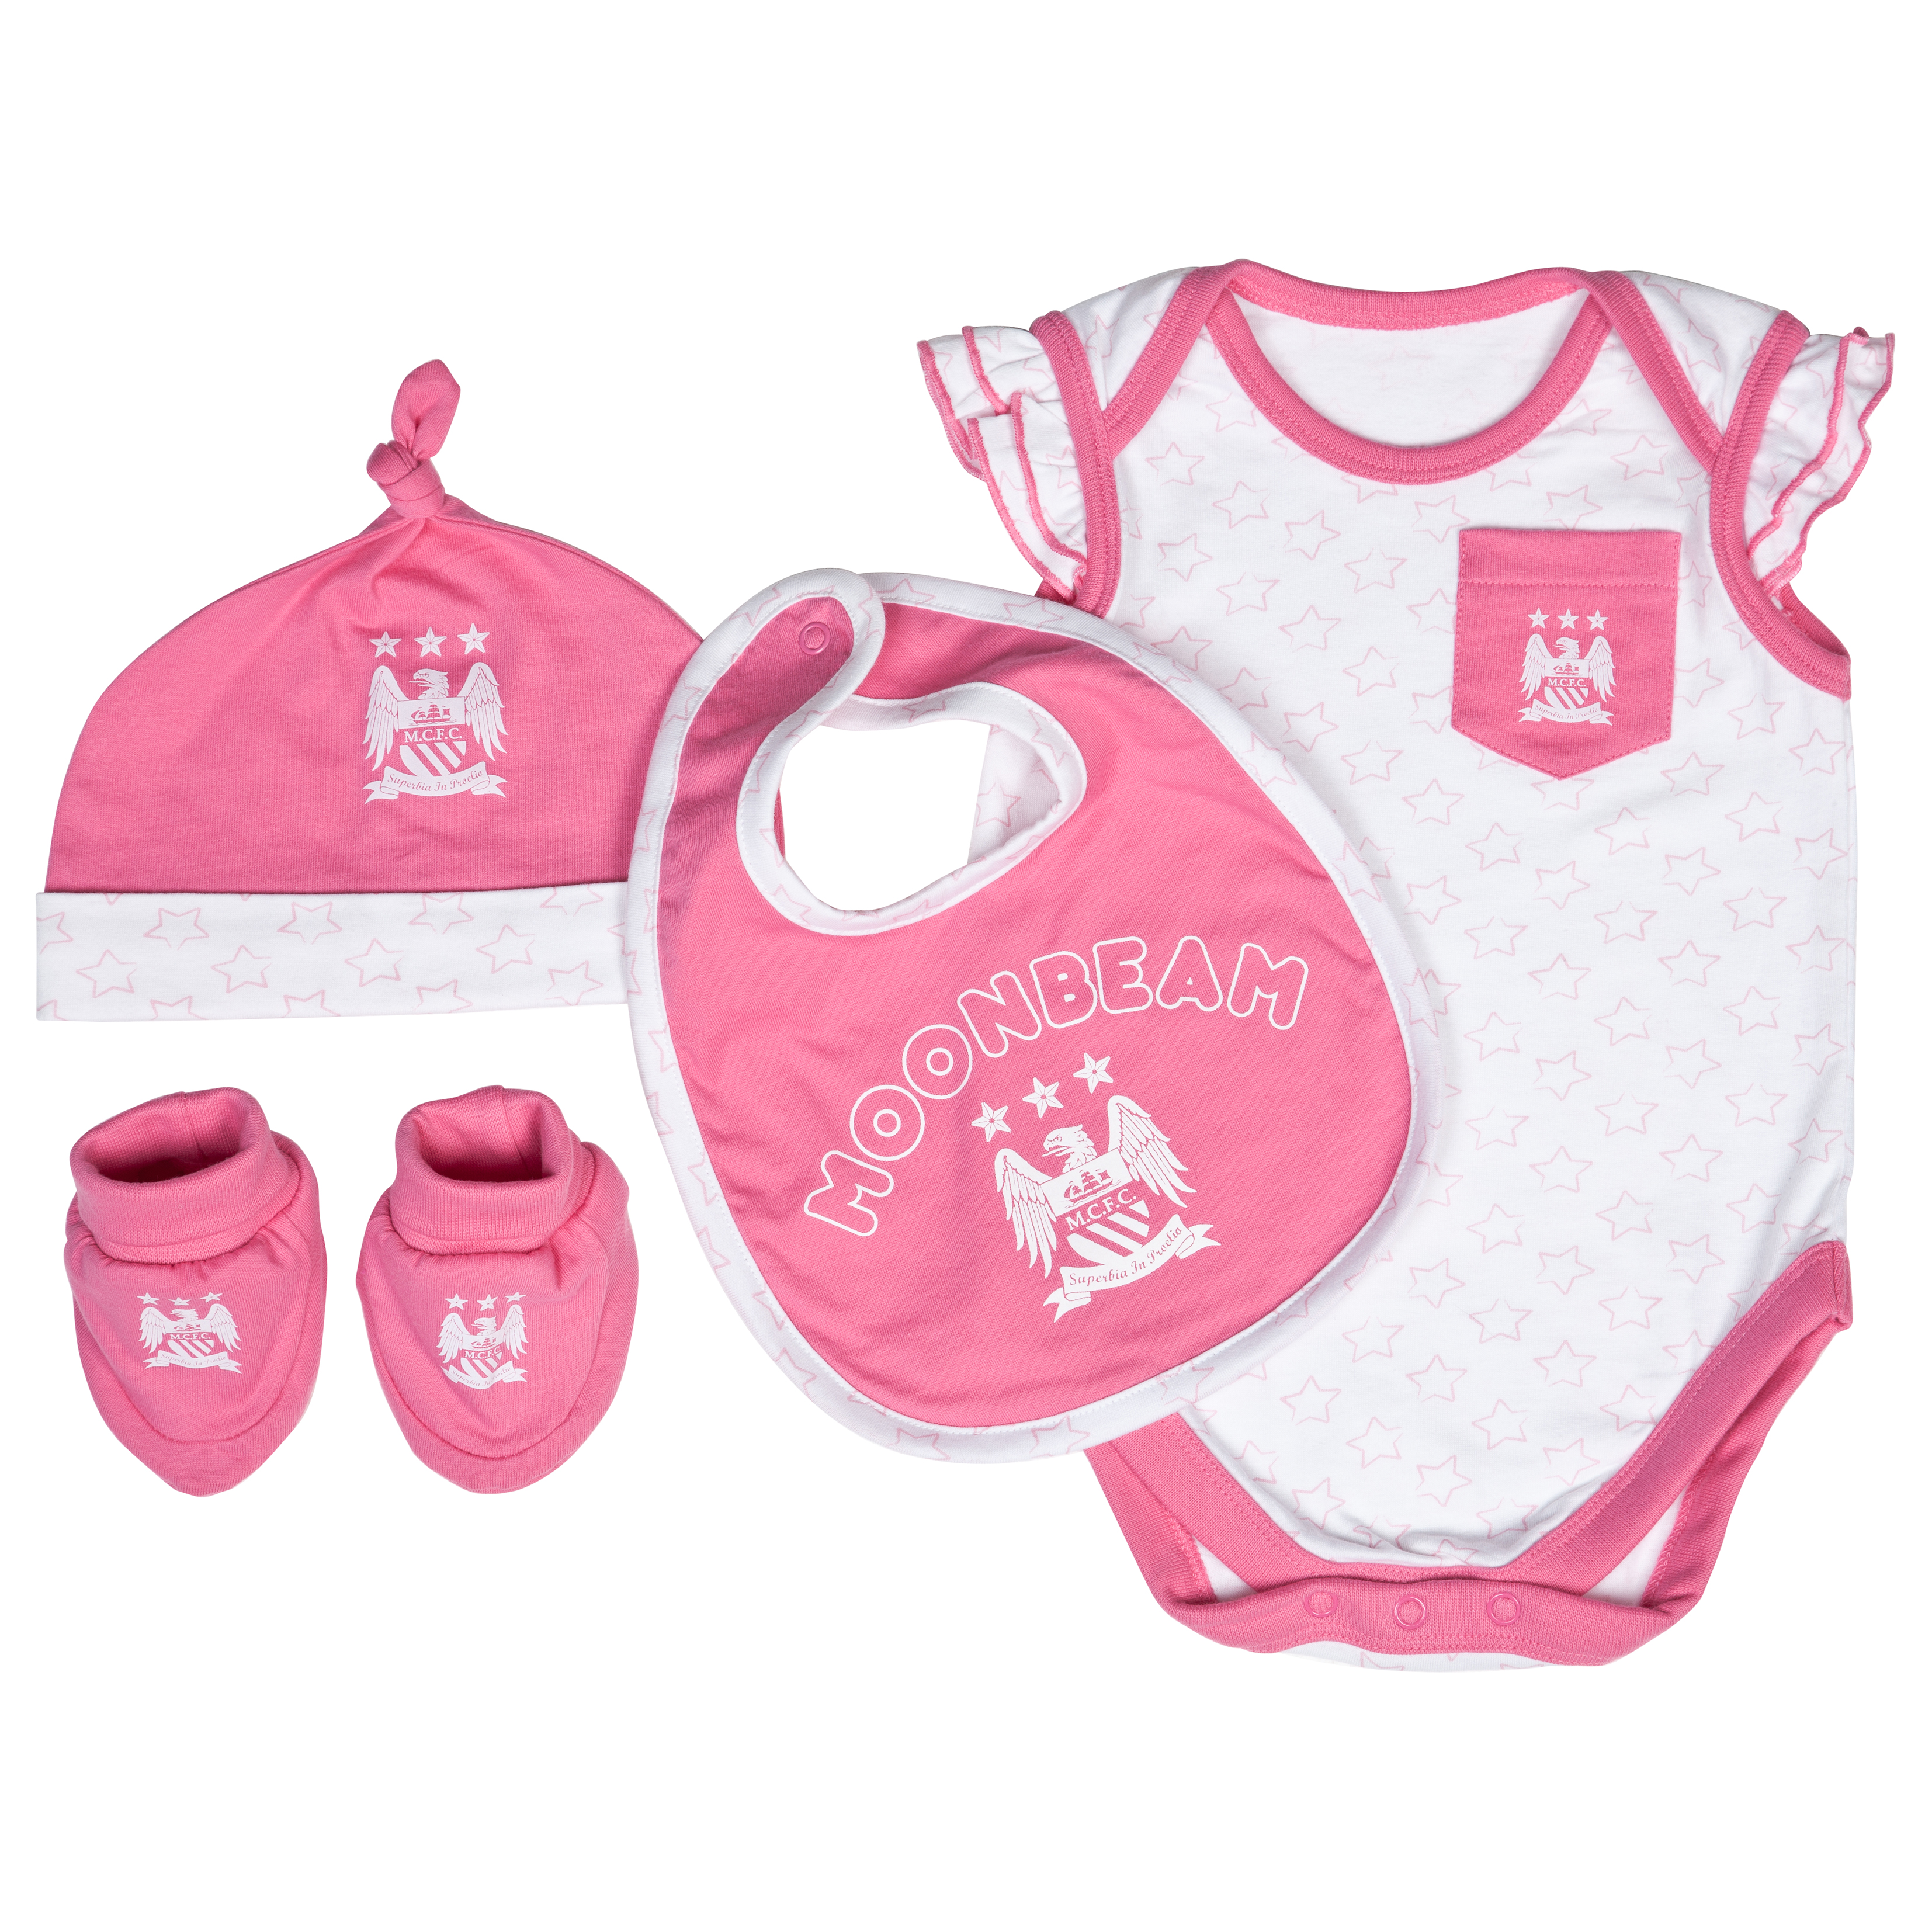 Manchester City Stars Gift Set - White/Pink - Baby